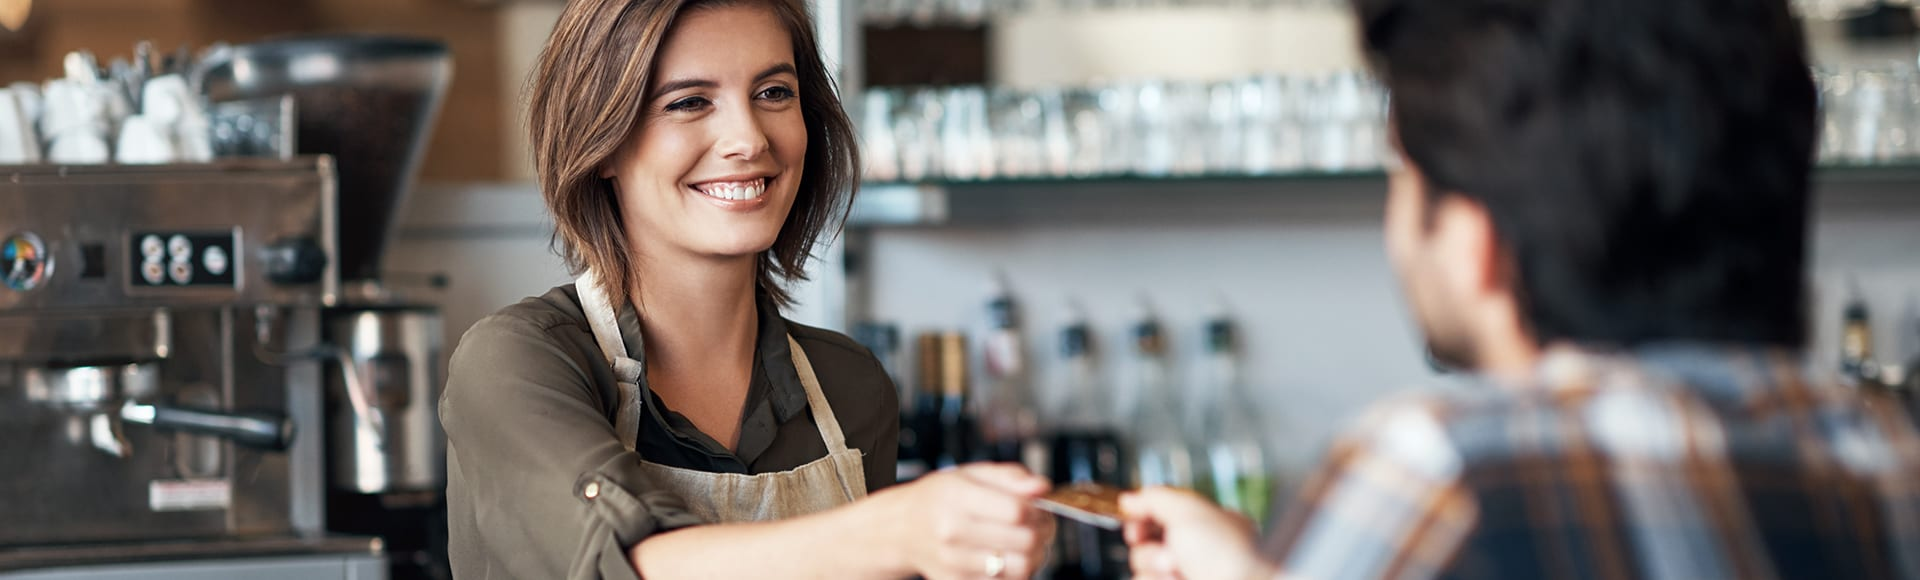 Shot of a cheerful female bartender receiving a card as payment from a customer inside of a restaurant